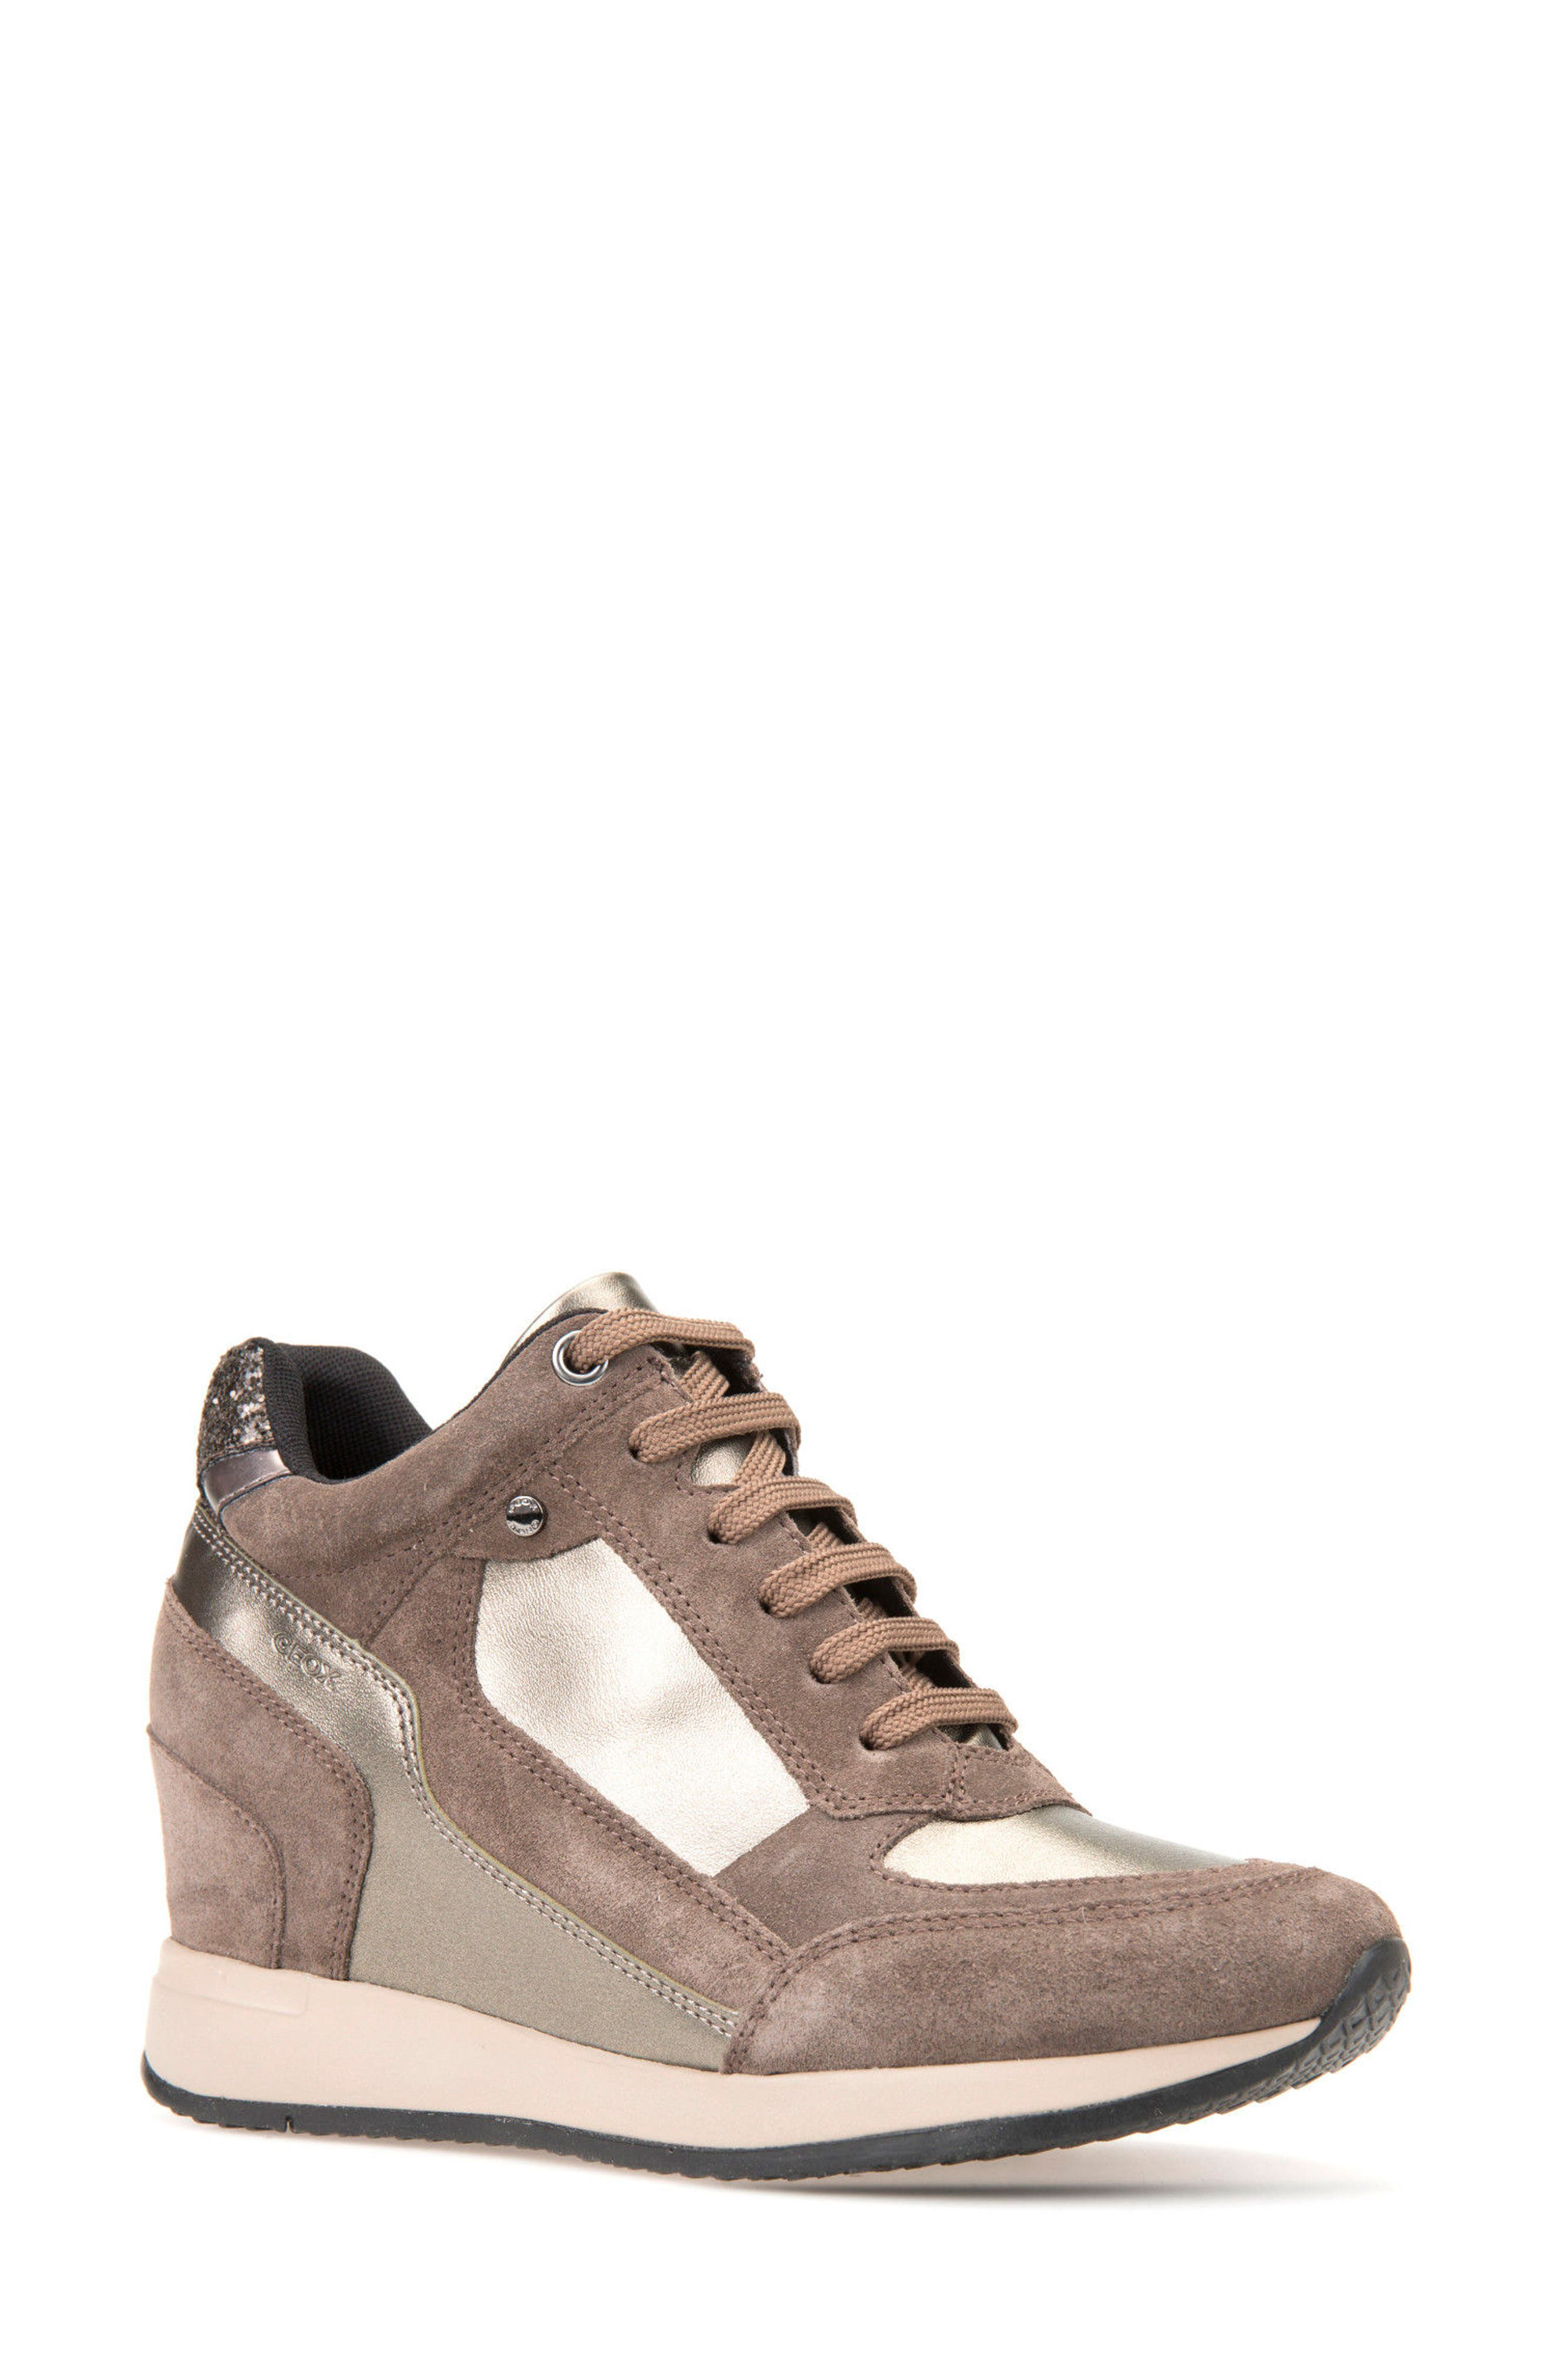 Main Image - Geox Nydame Wedge Sneaker (Women)